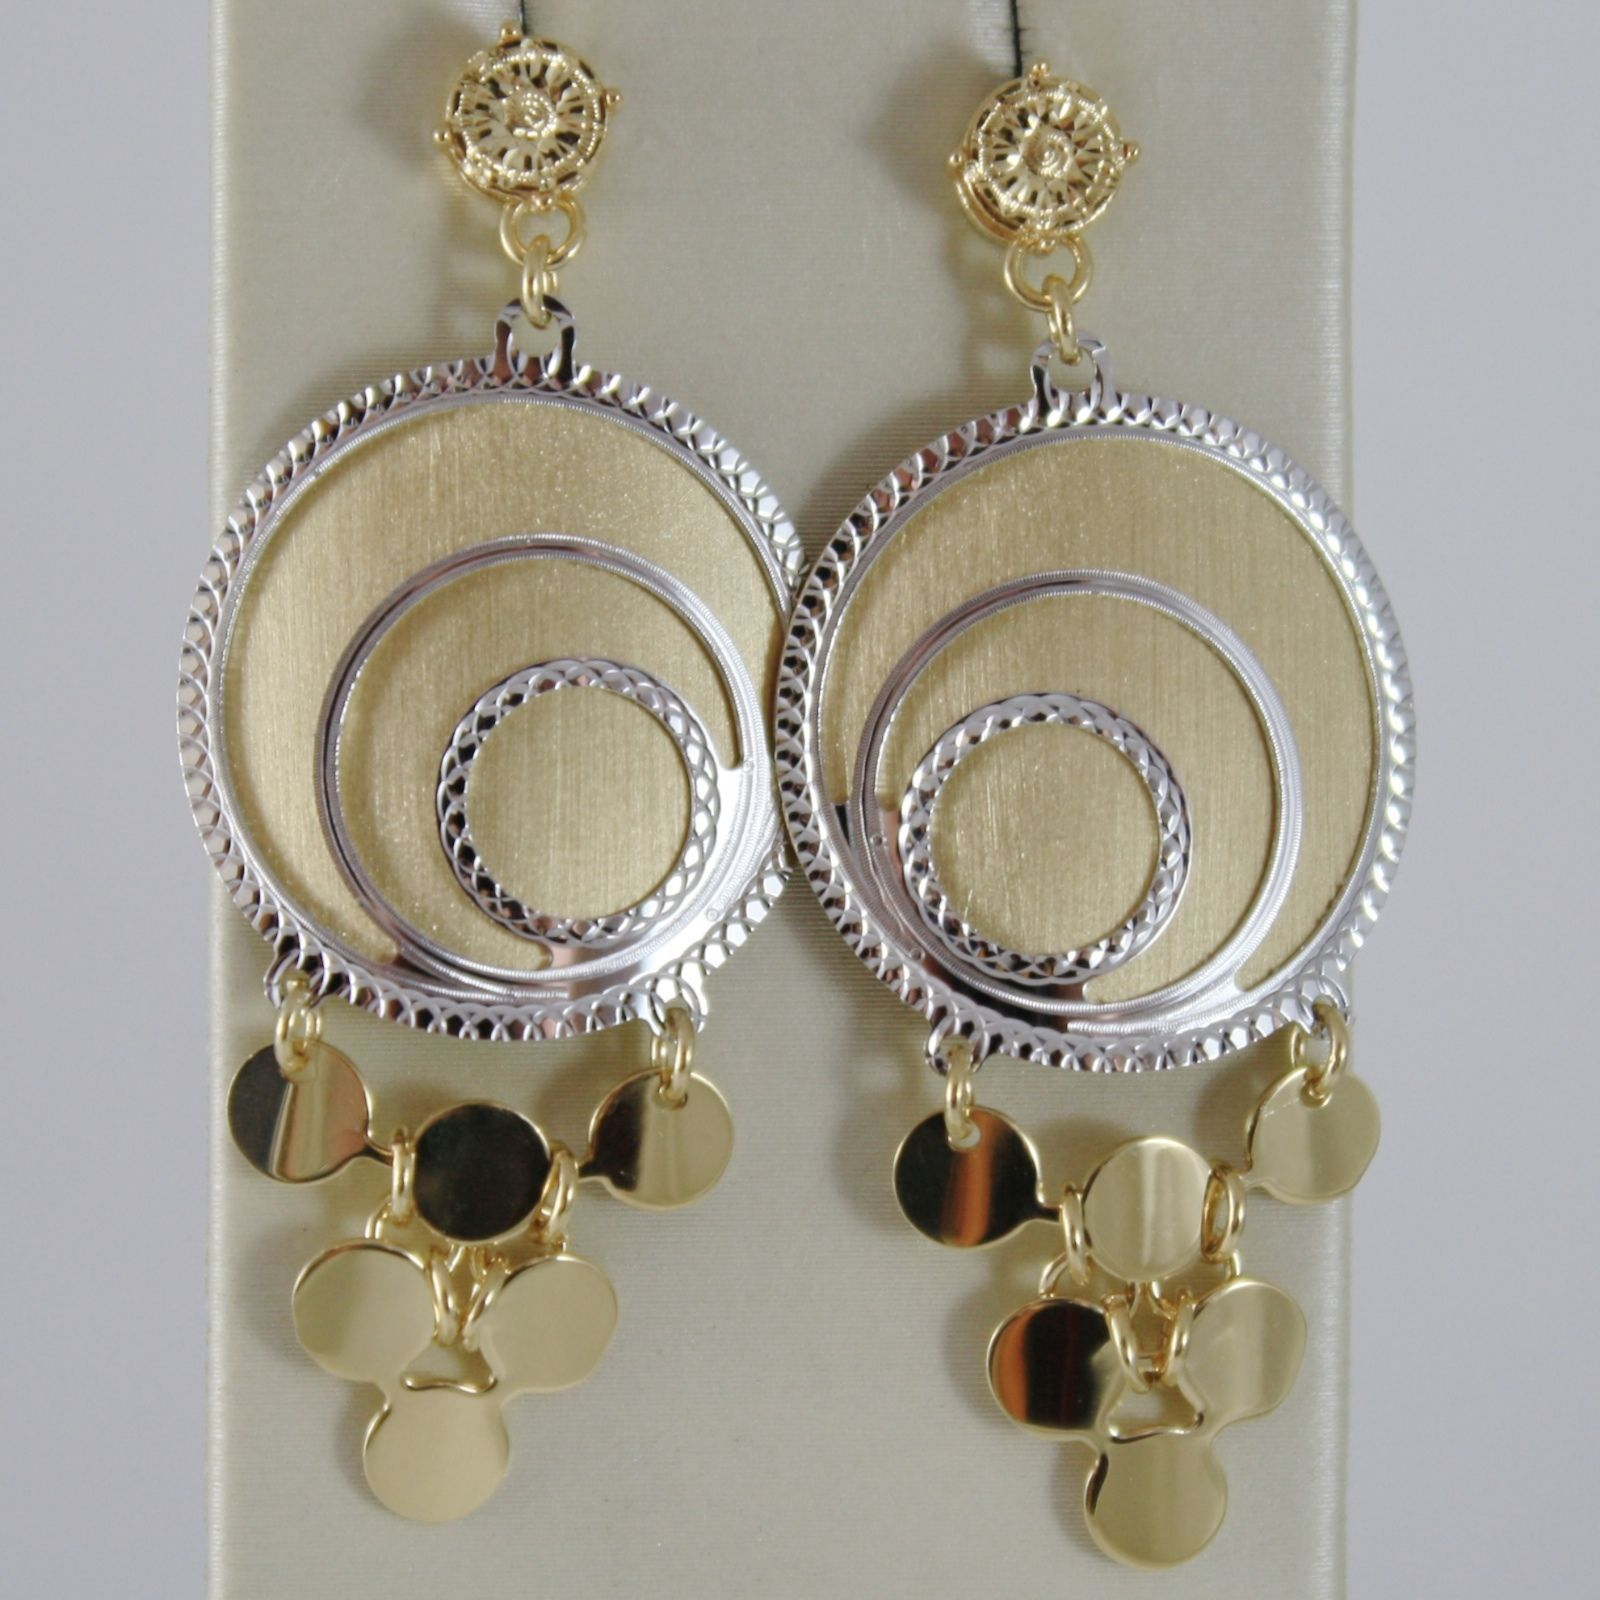 18K YELLOW WHITE GOLD PENDANT DISC EARRINGS FINELY WORKED BUNCH MADE IN ITALY